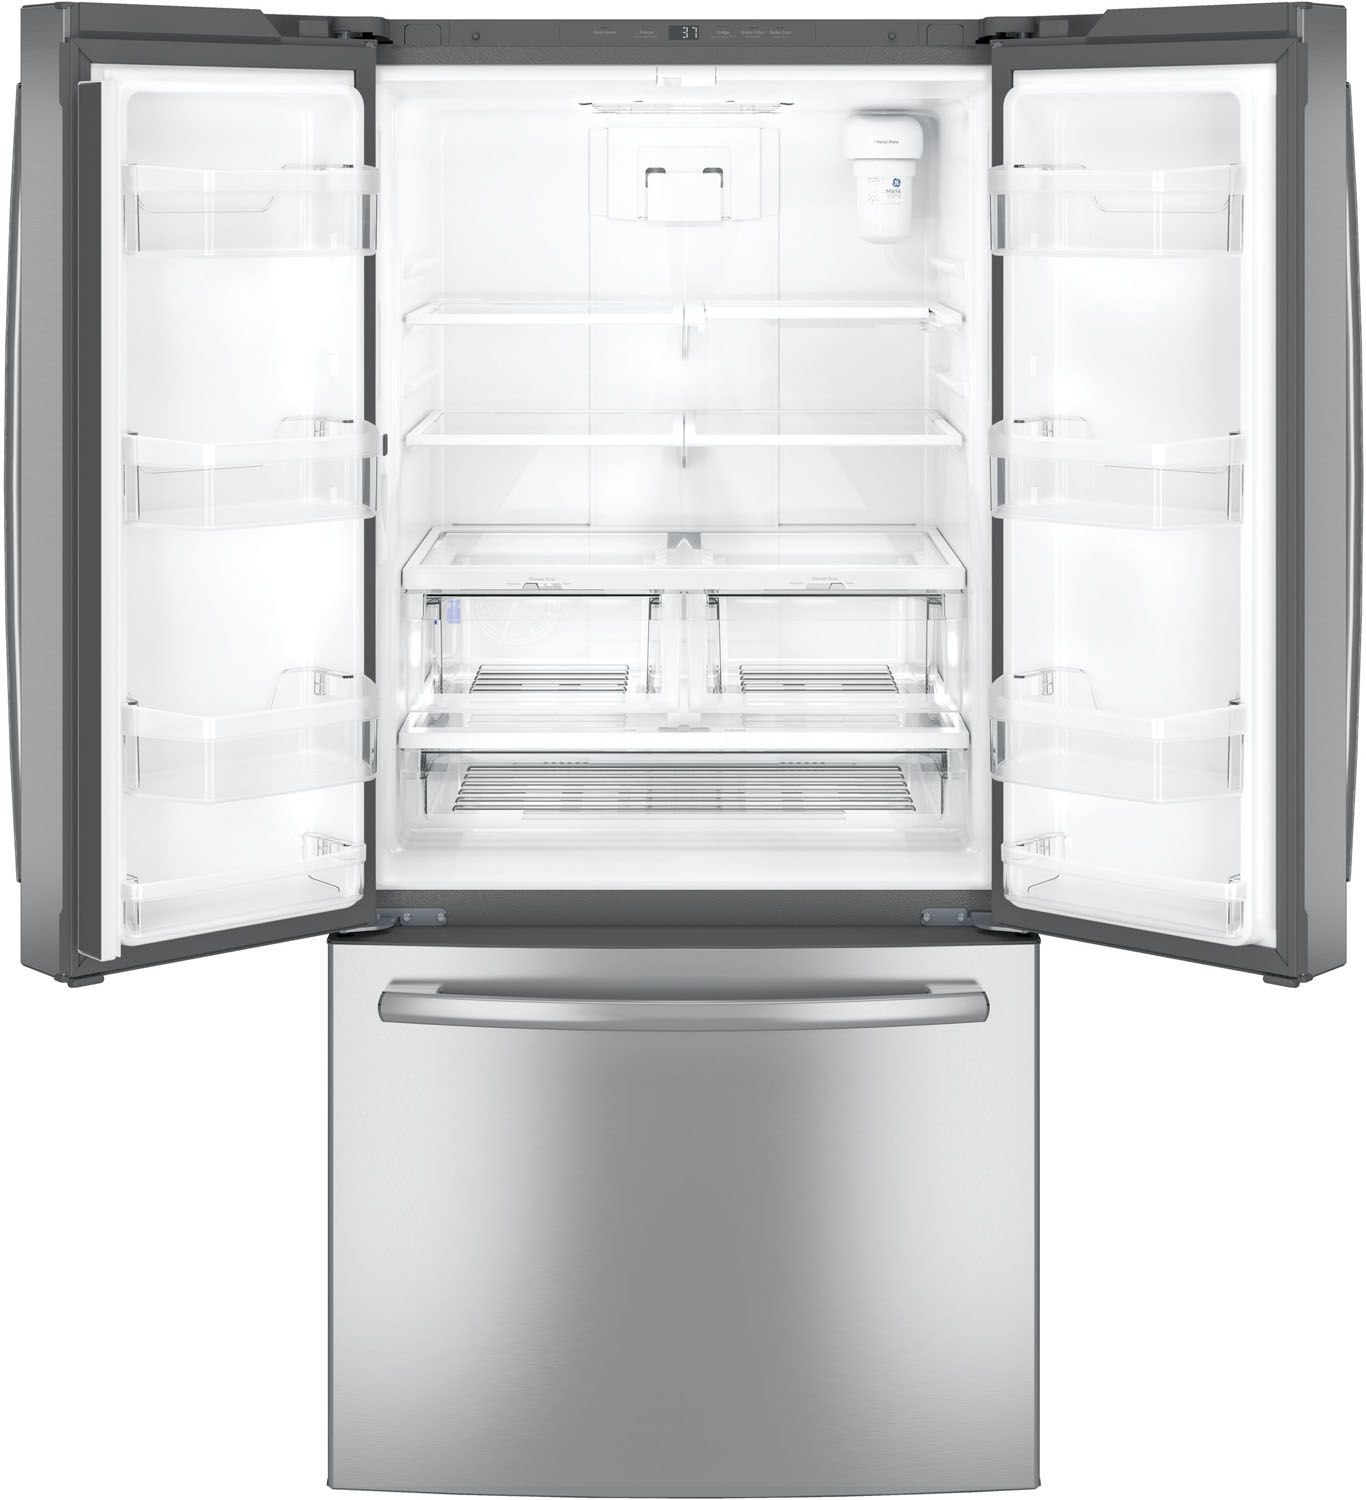 Ge stainless steel french door refrigerator gne25jskss ge french door refrigerator gne25jmkes rubansaba